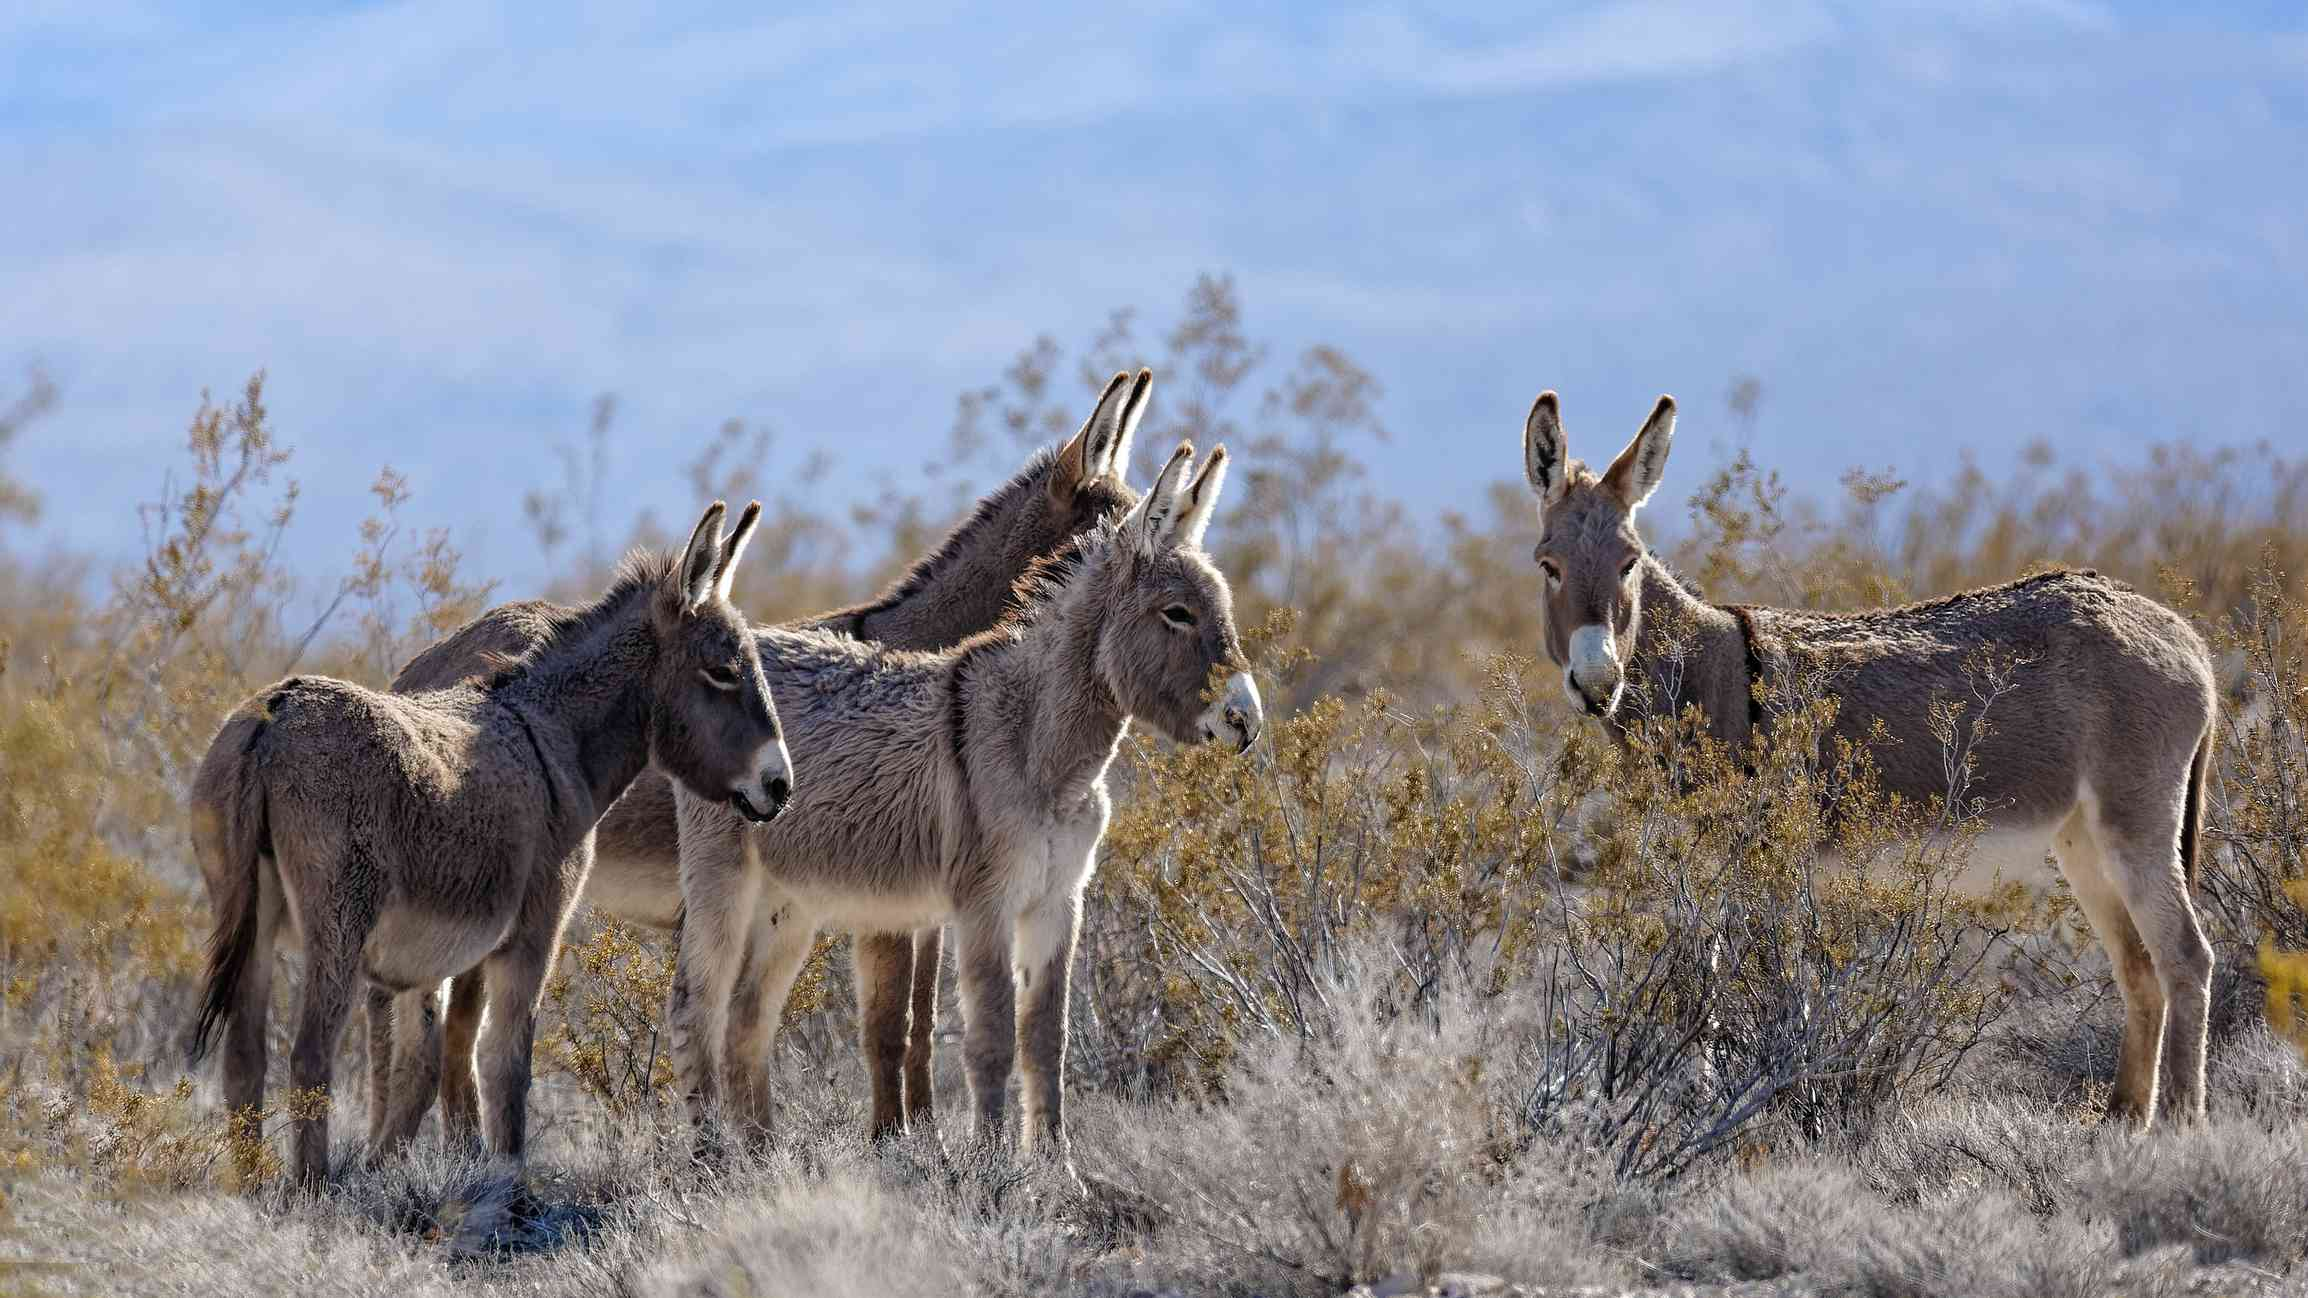 group of four burros stand near dry bushes